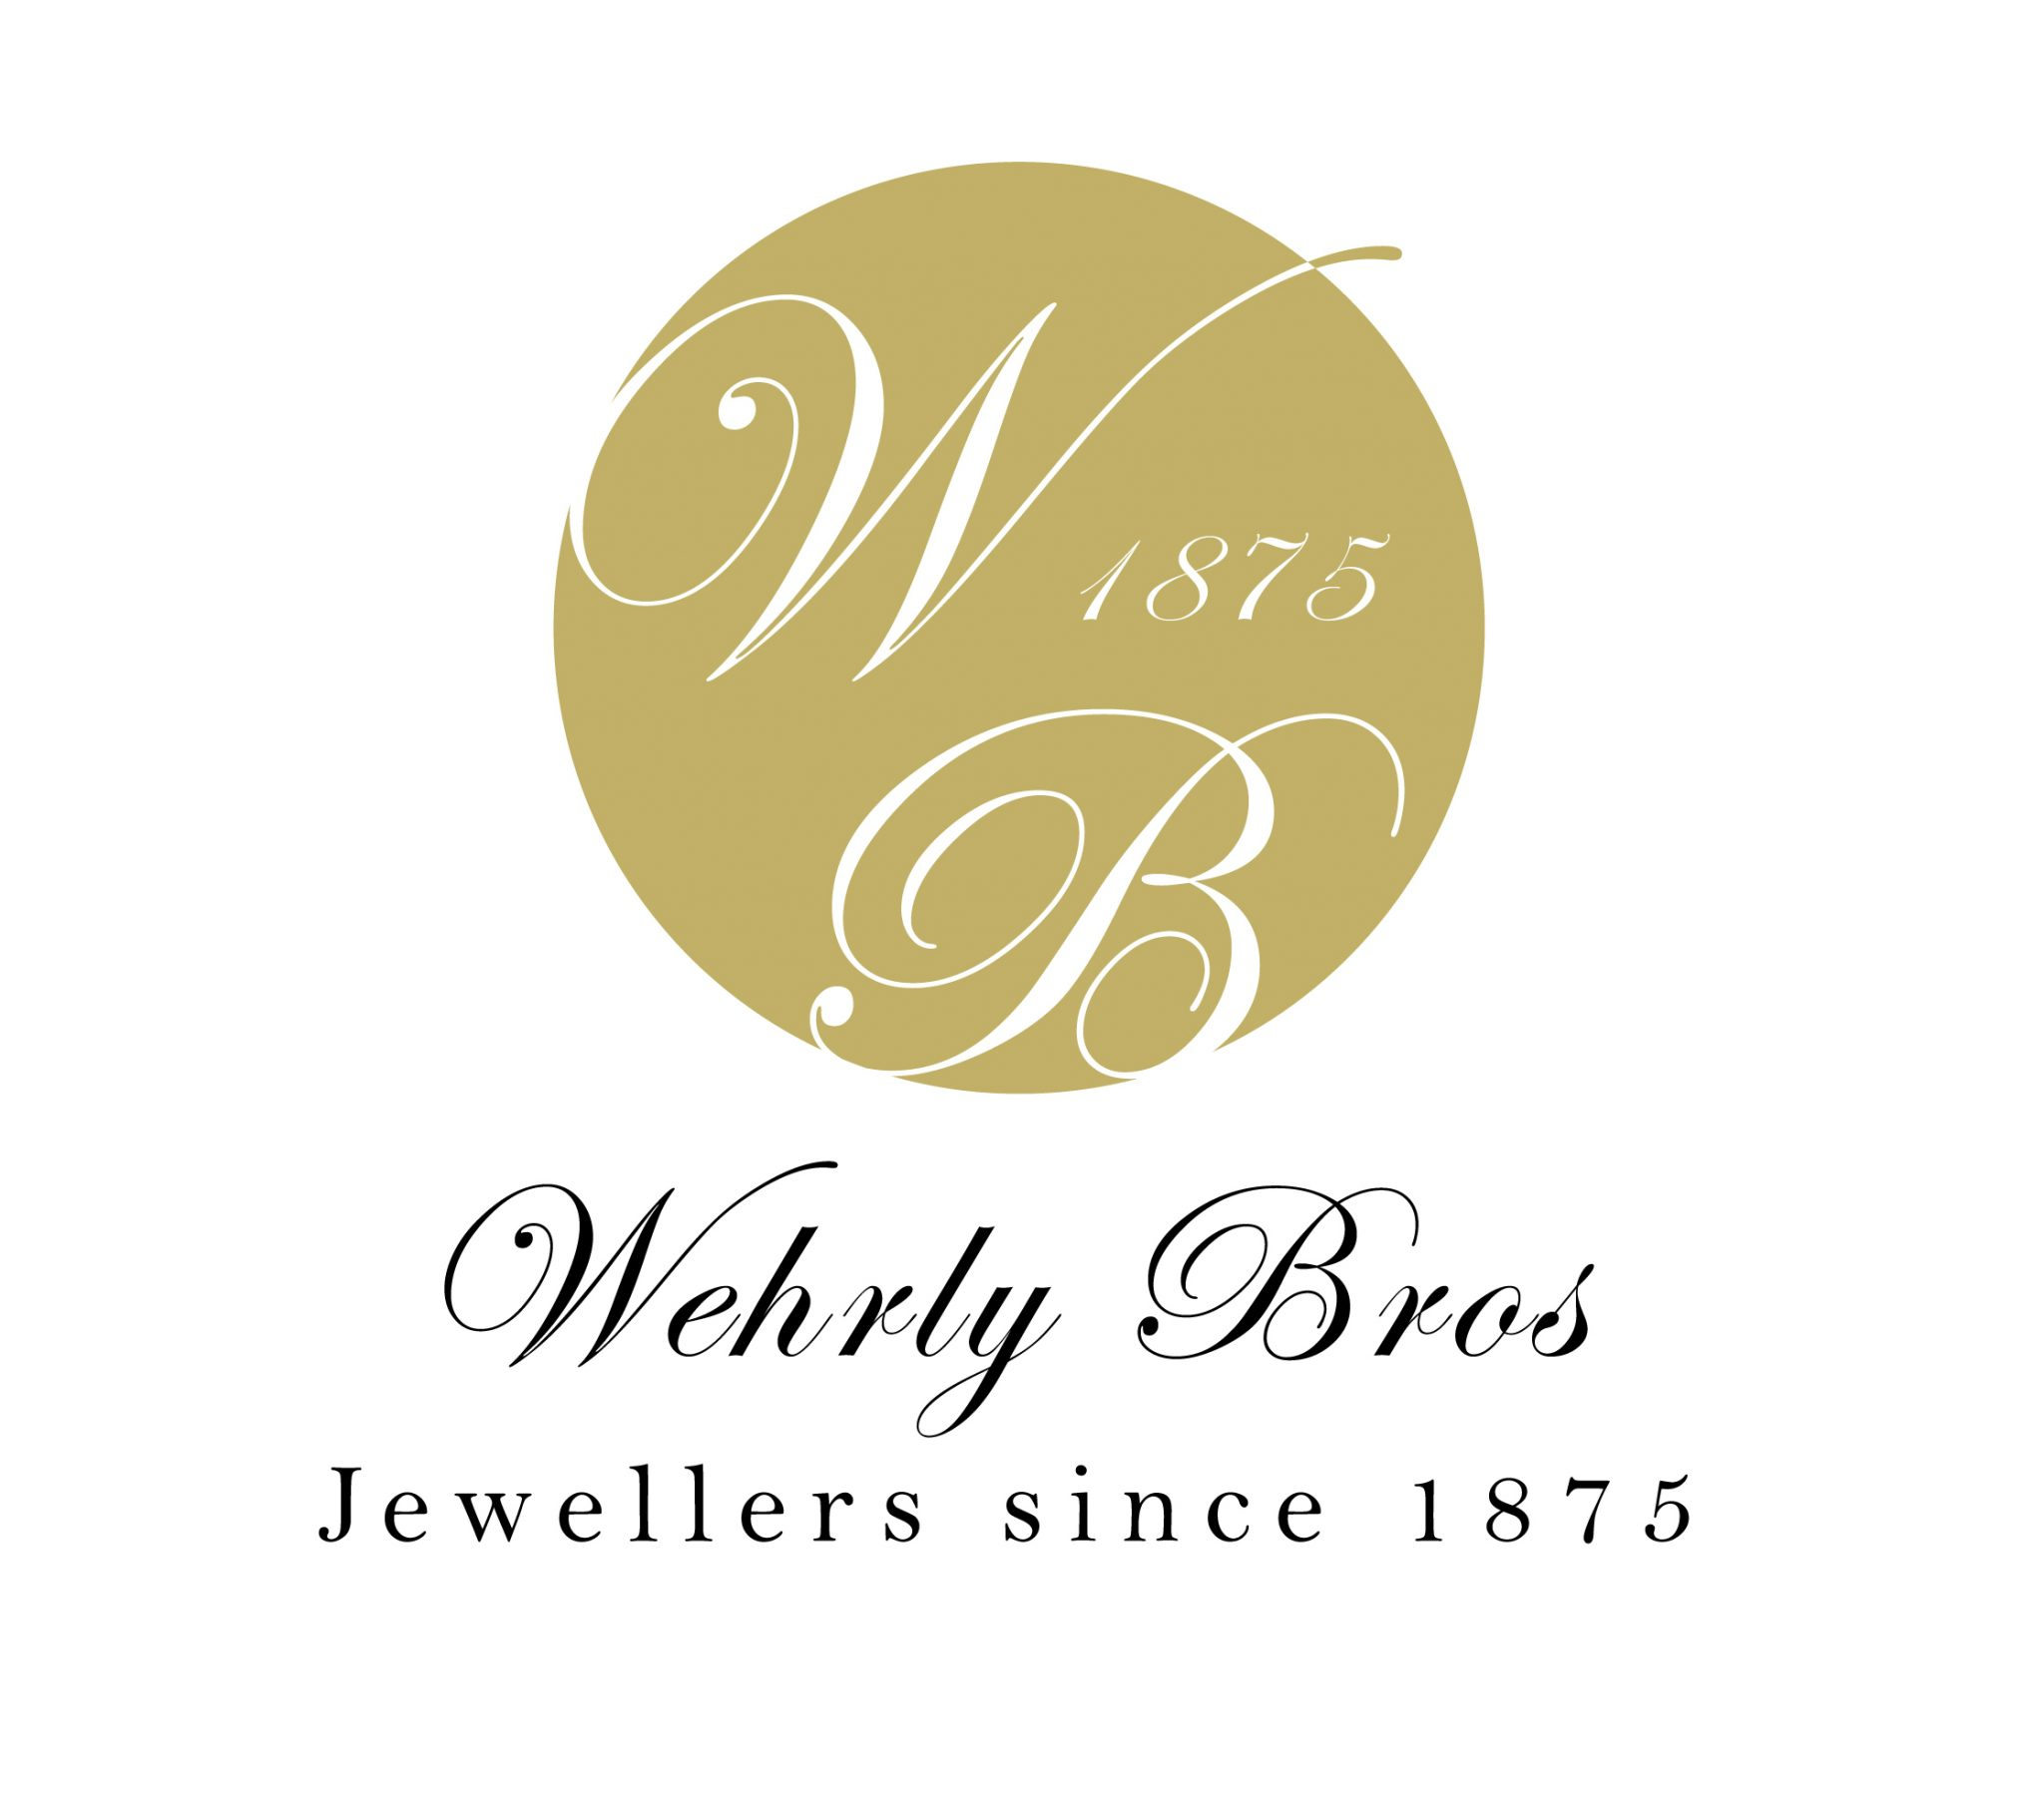 Wehrly Jewellers